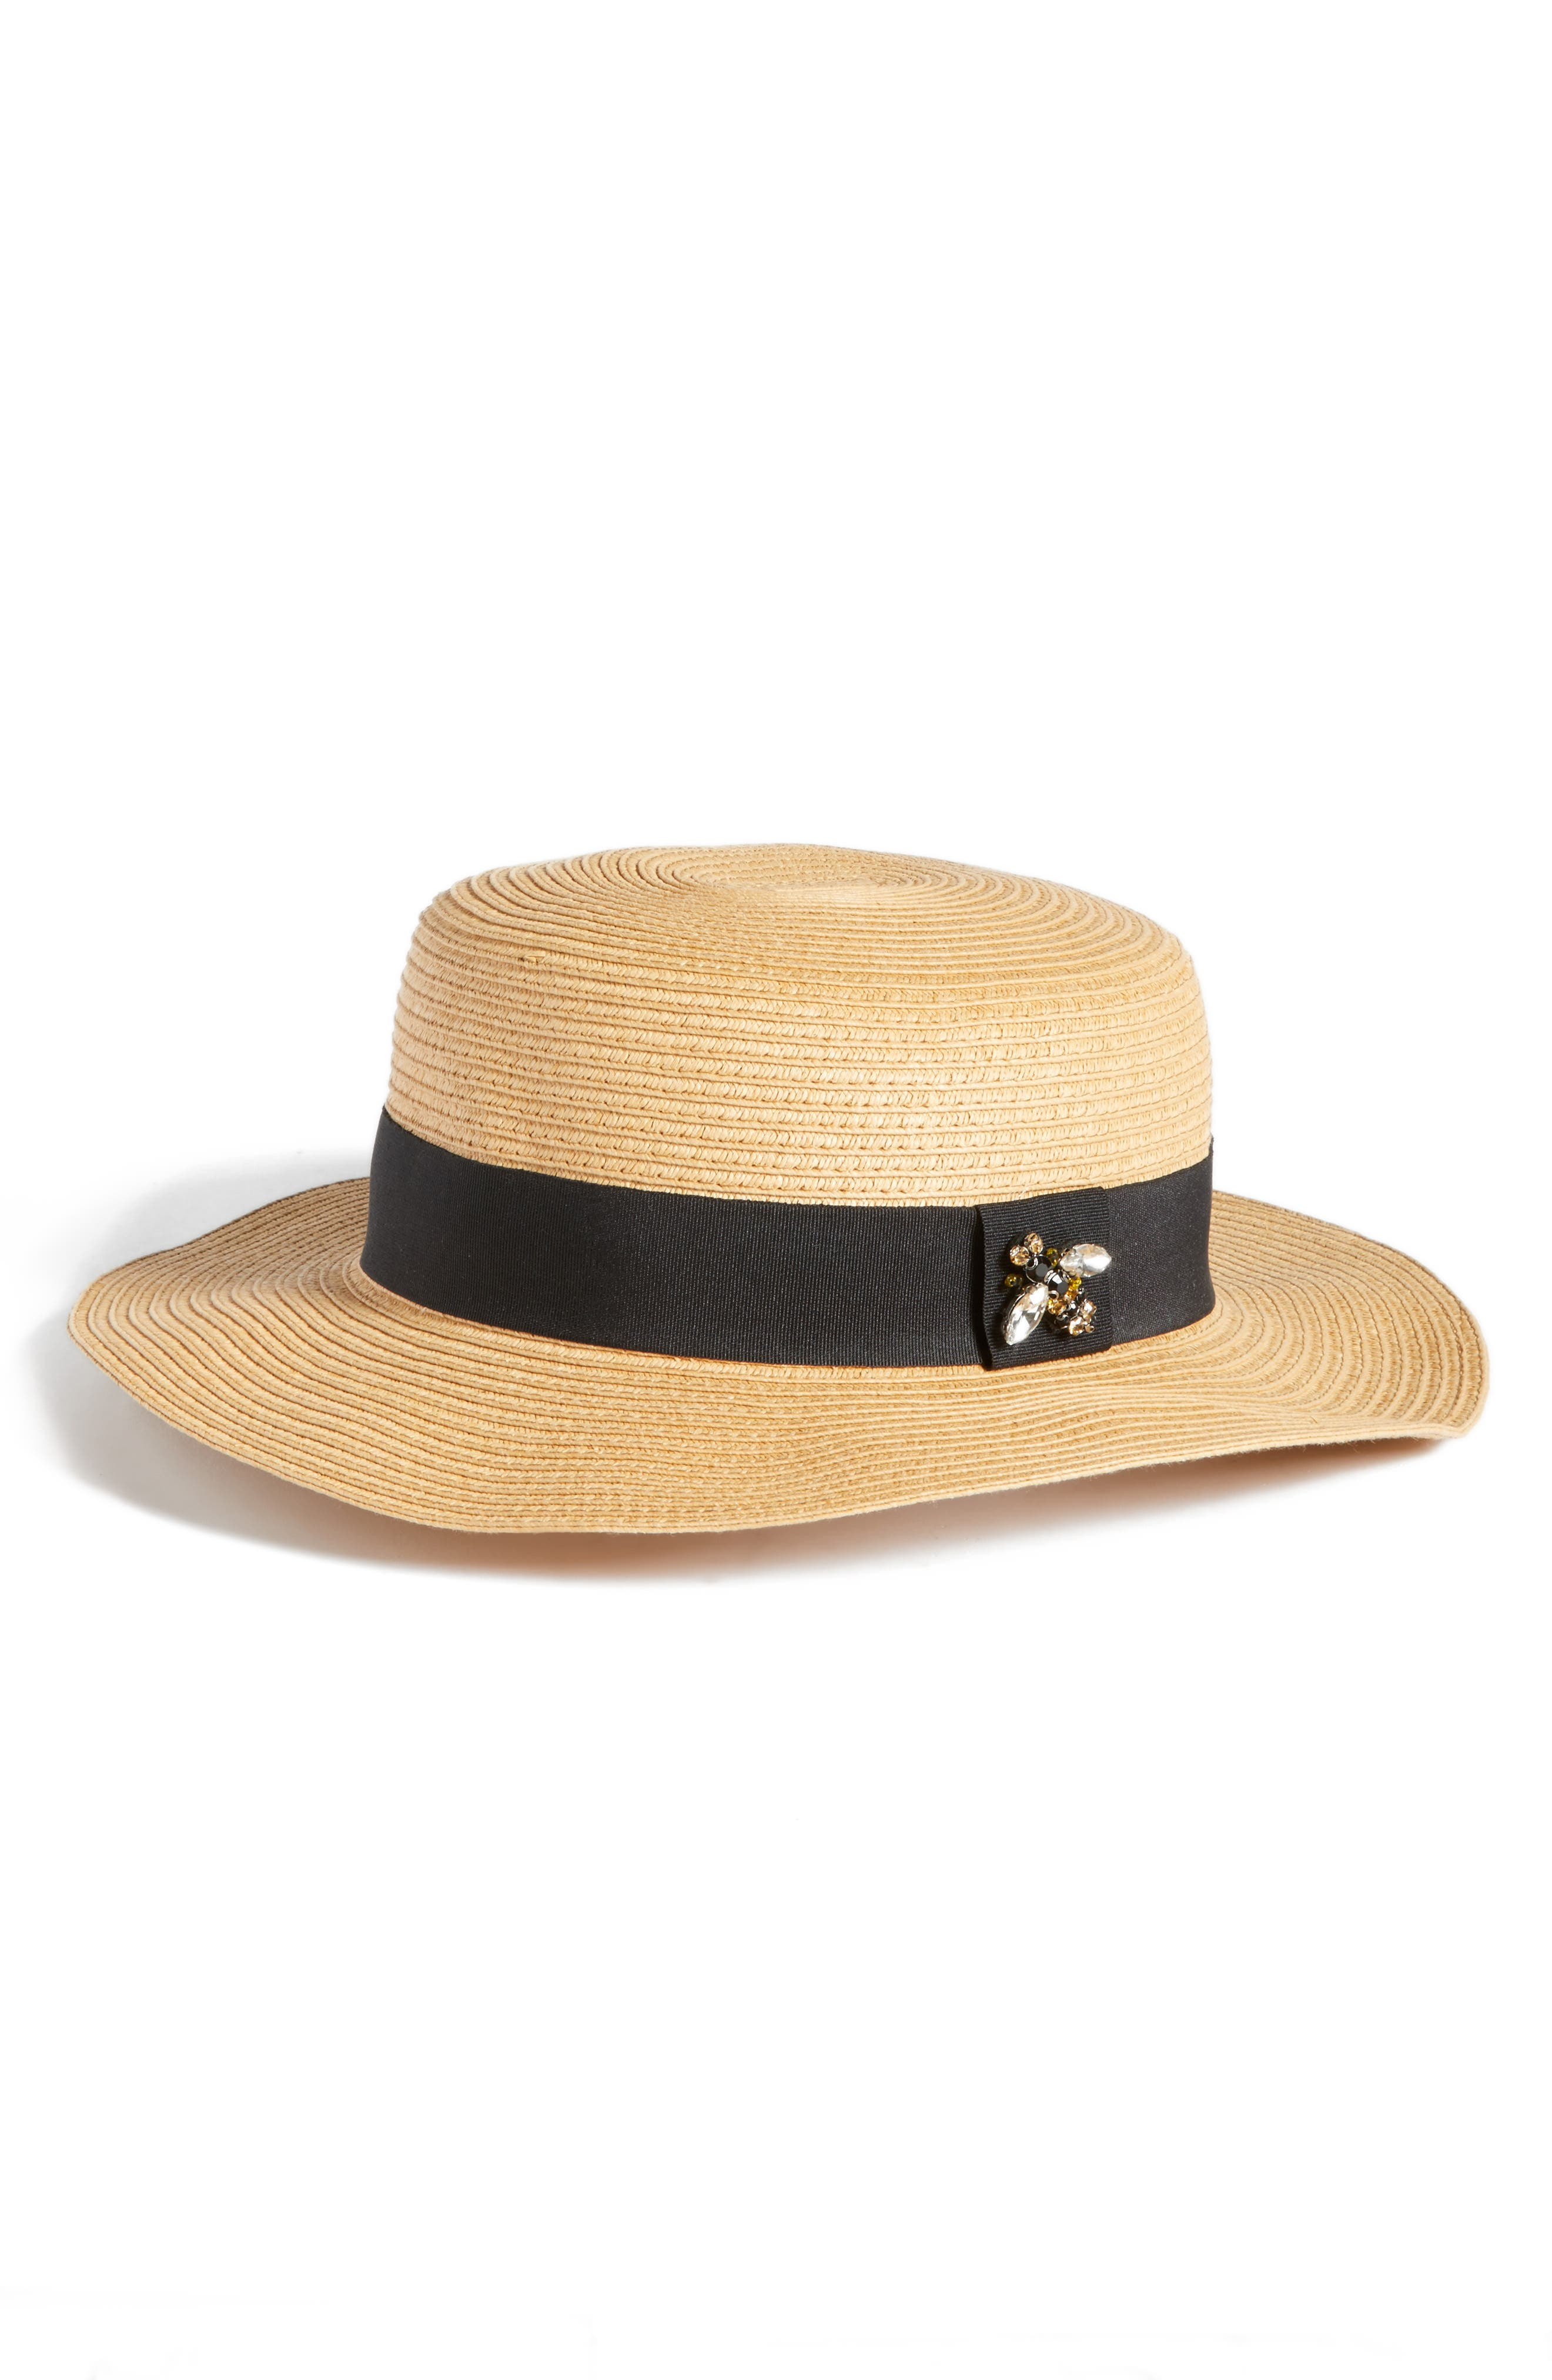 Straw Boater Hat,                             Main thumbnail 1, color,                             238